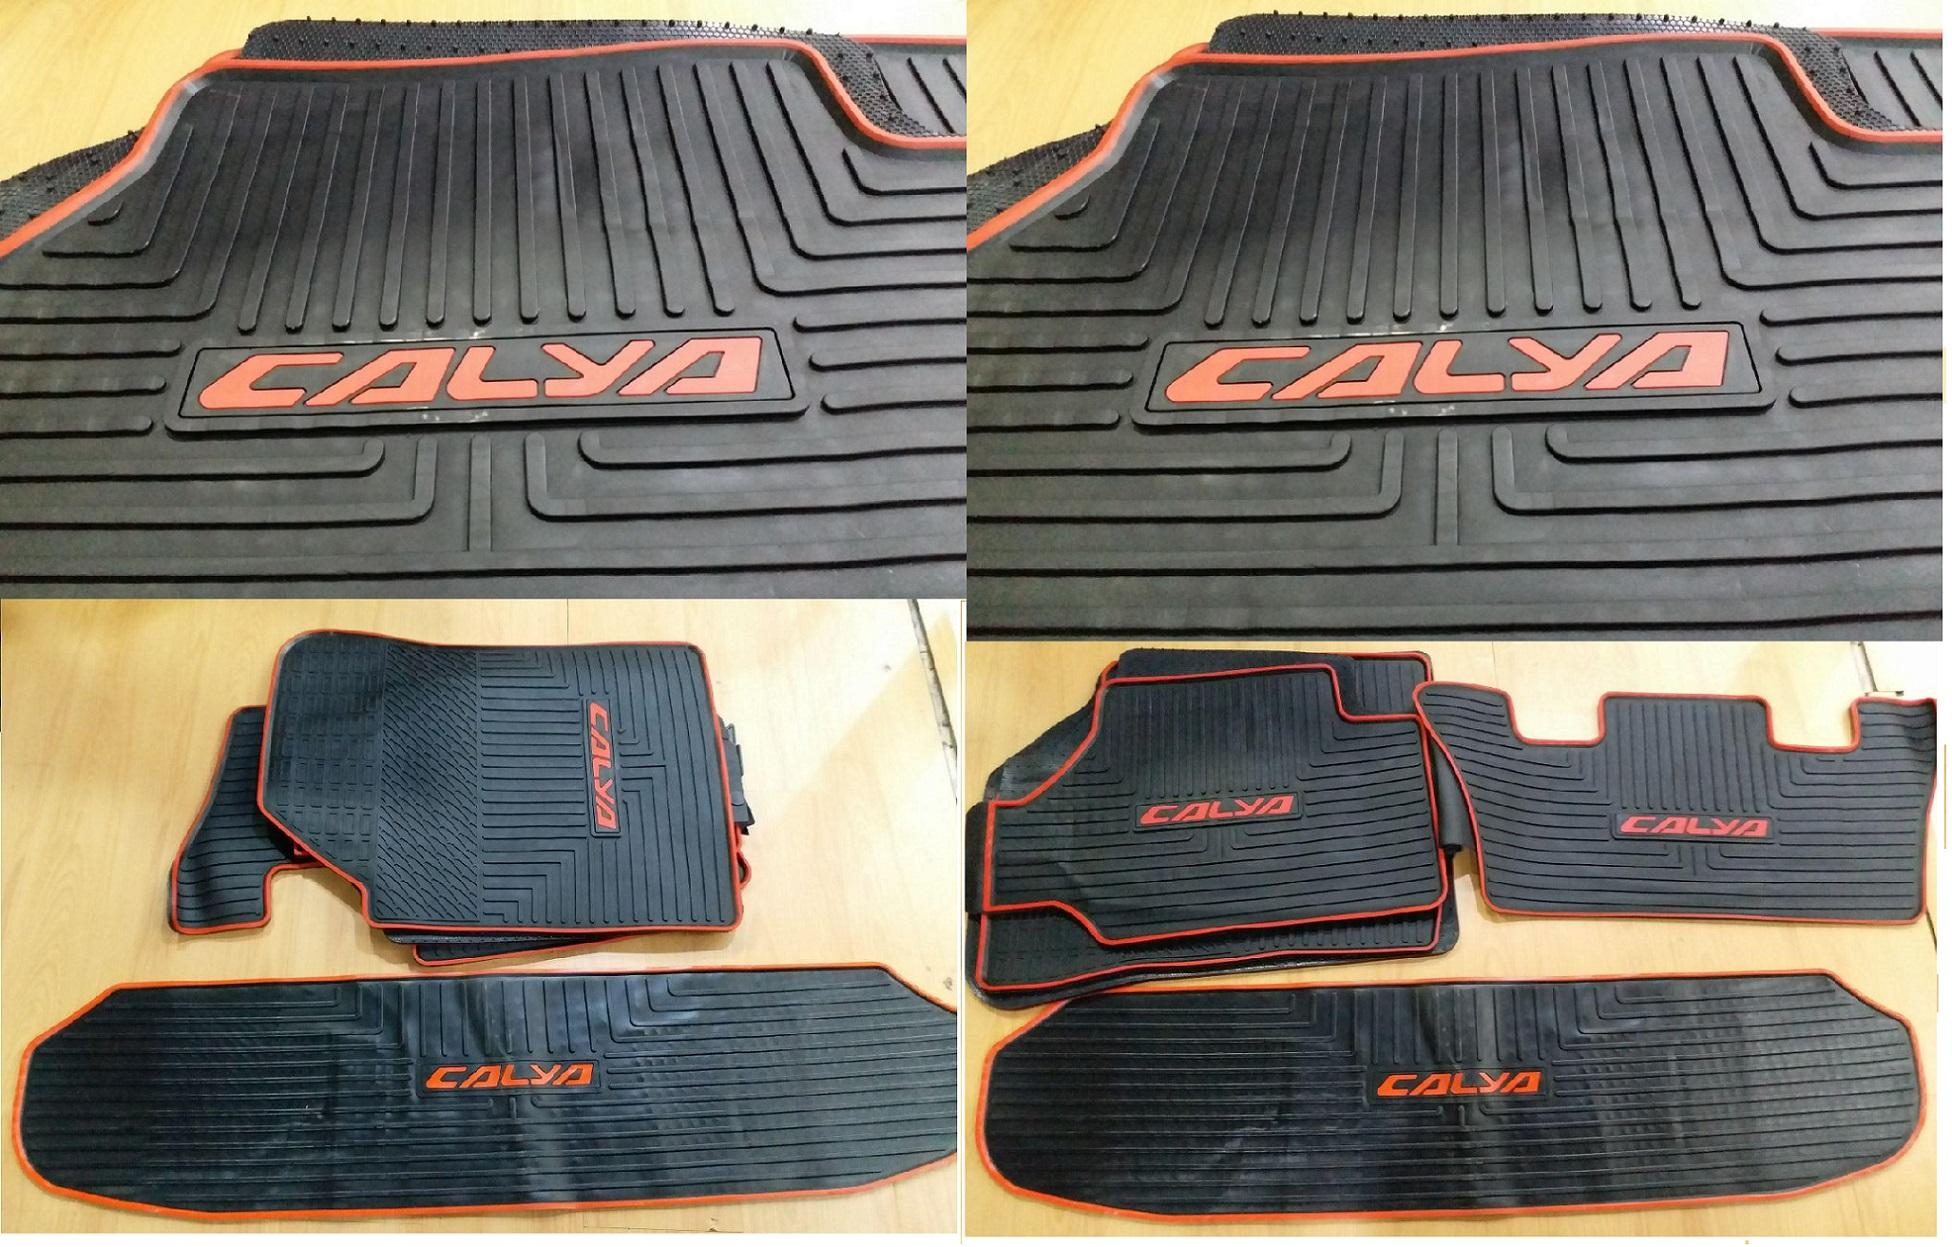 OTOAKSESORIS2000 Karpet Karet - Car Carpet Black Lining Mobil Calya (IMPORT PRODUCT)